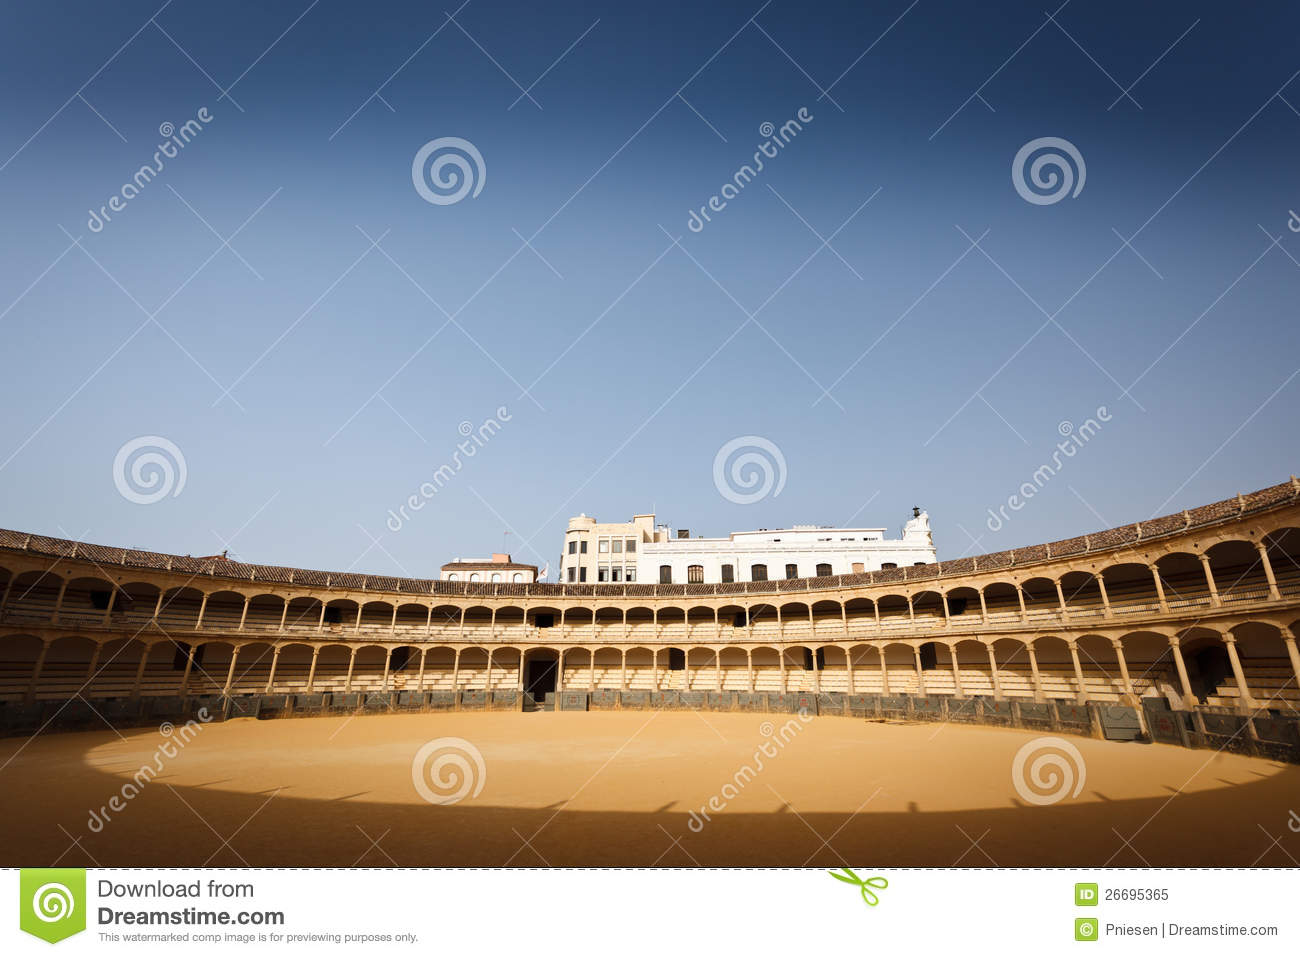 Sunlit Seating And Floor Of Bull Fight Arena Royalty Free Stock.